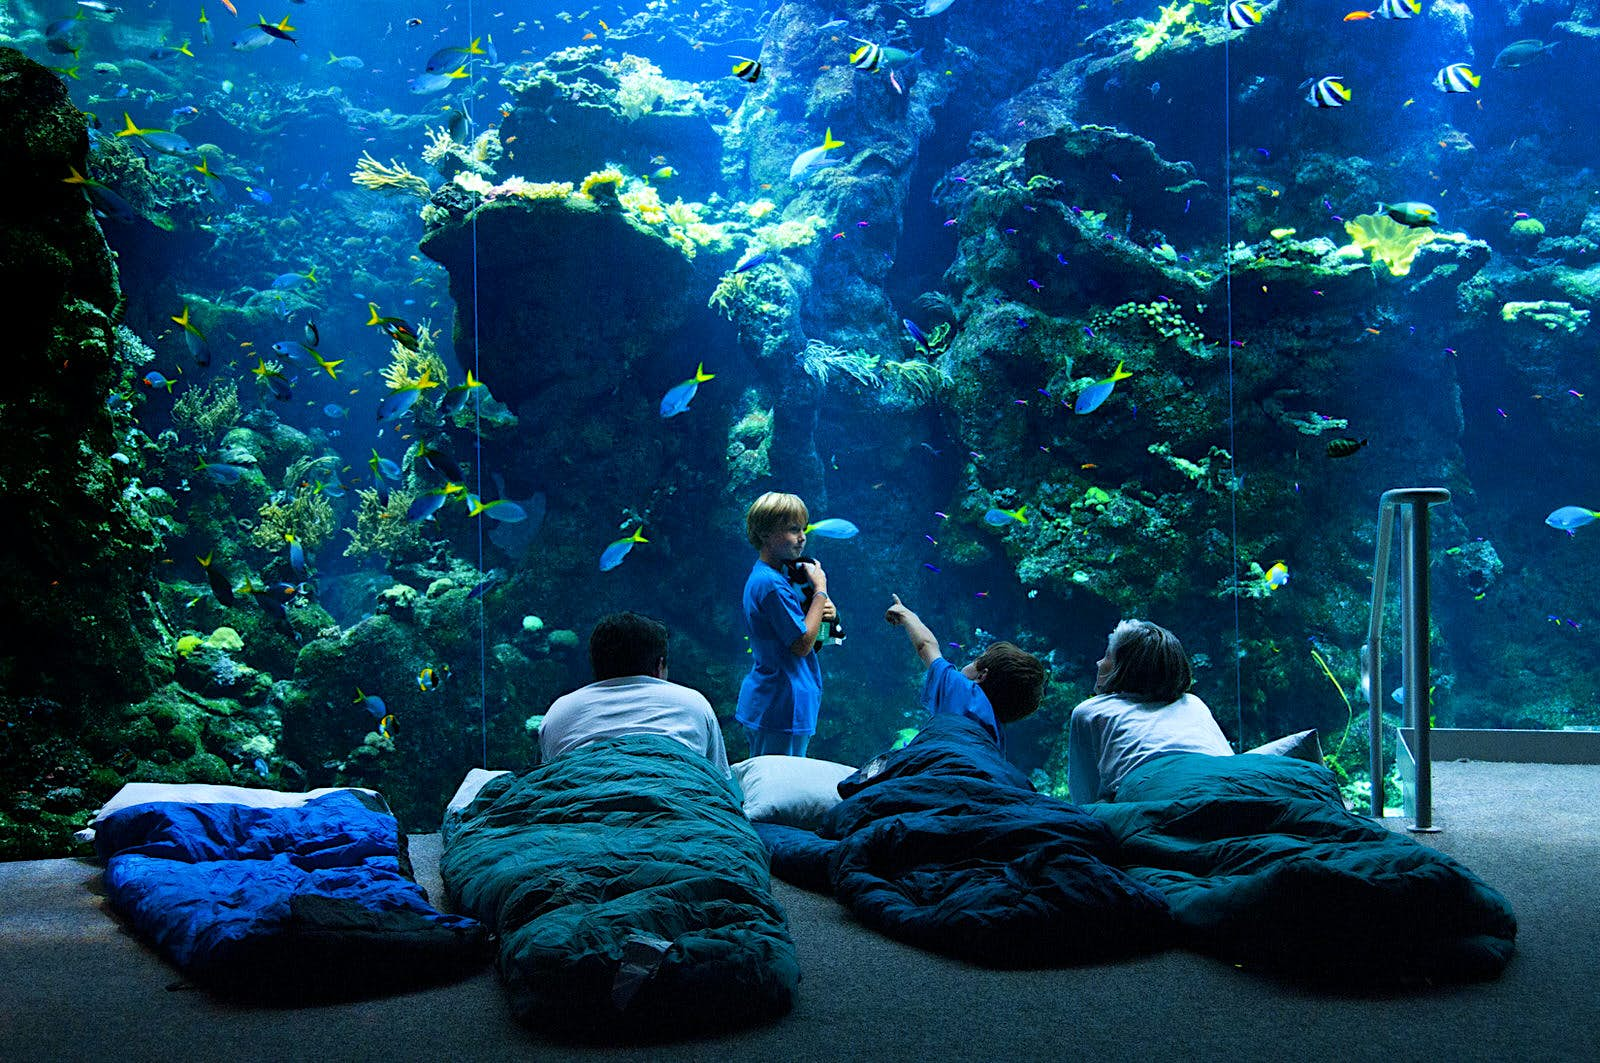 Three kids and one adult lie in sleeping bags in front of a giant aquarium filled with brightly colored fish and coral © California Academy of Sciences